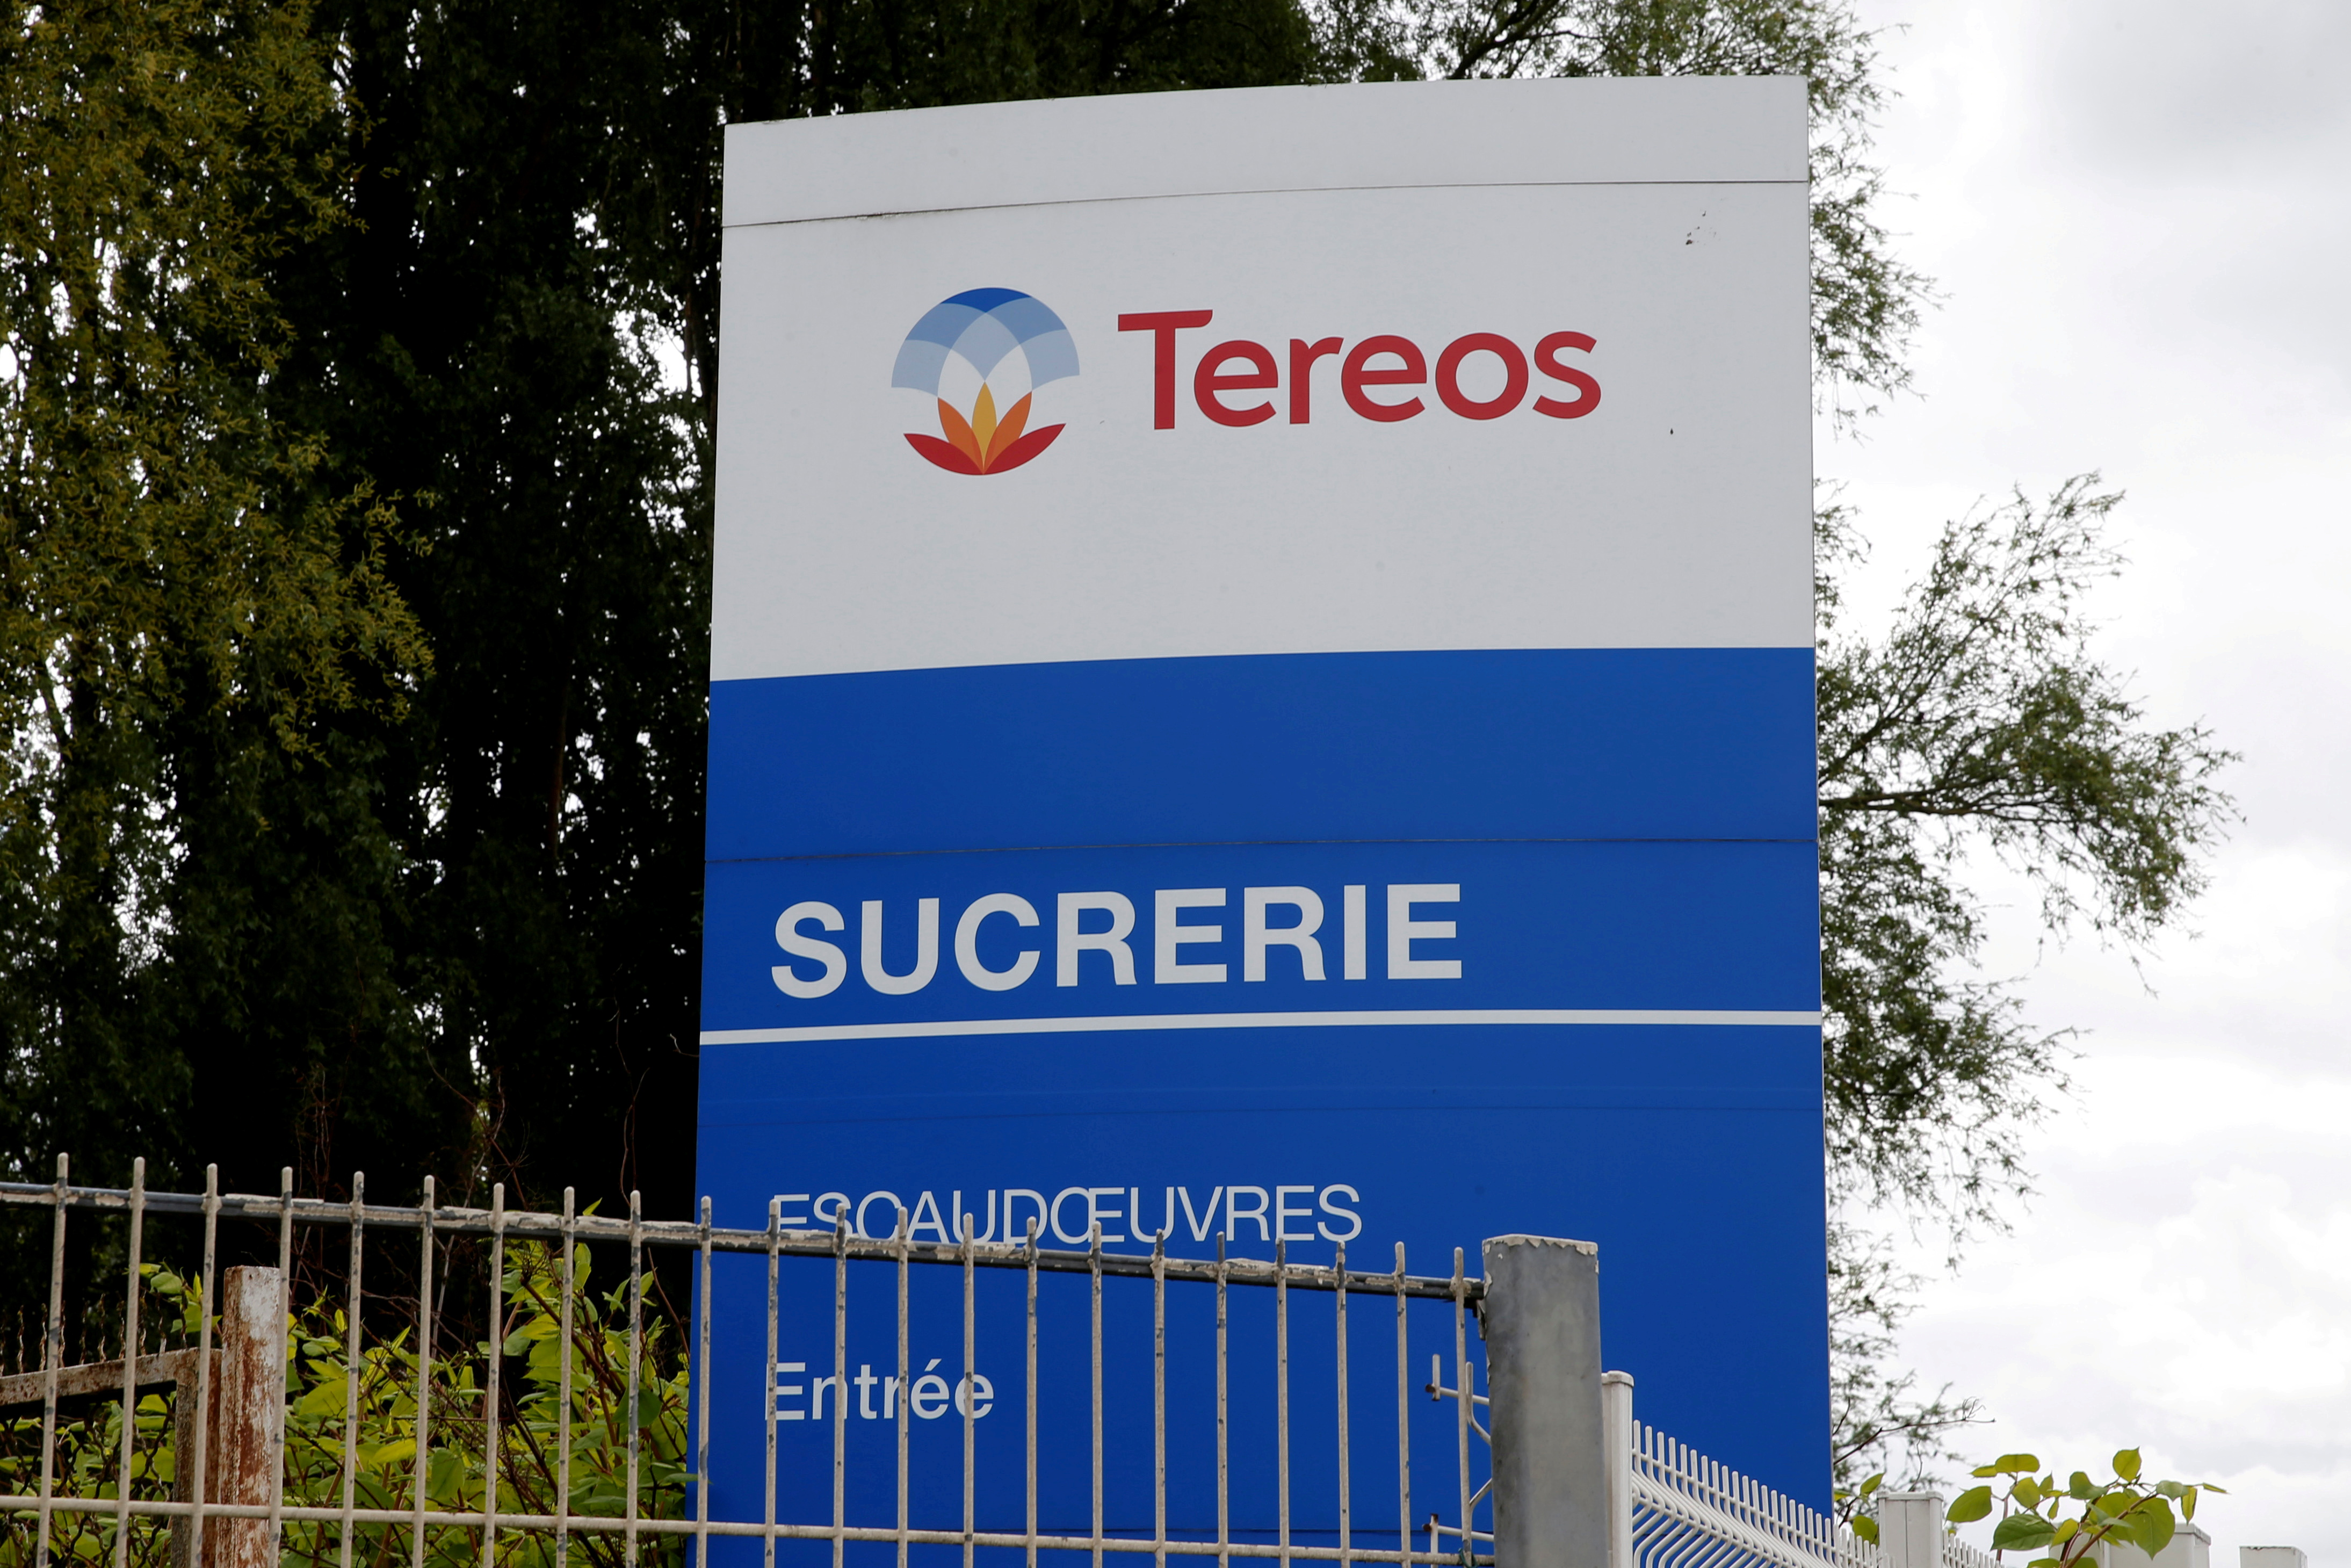 A view shows a logo at the entrance of the Tereos sugar factory in Escaudoeuvres, Northern France, April 30, 2020. REUTERS/Pascal Rossignol/File Photo